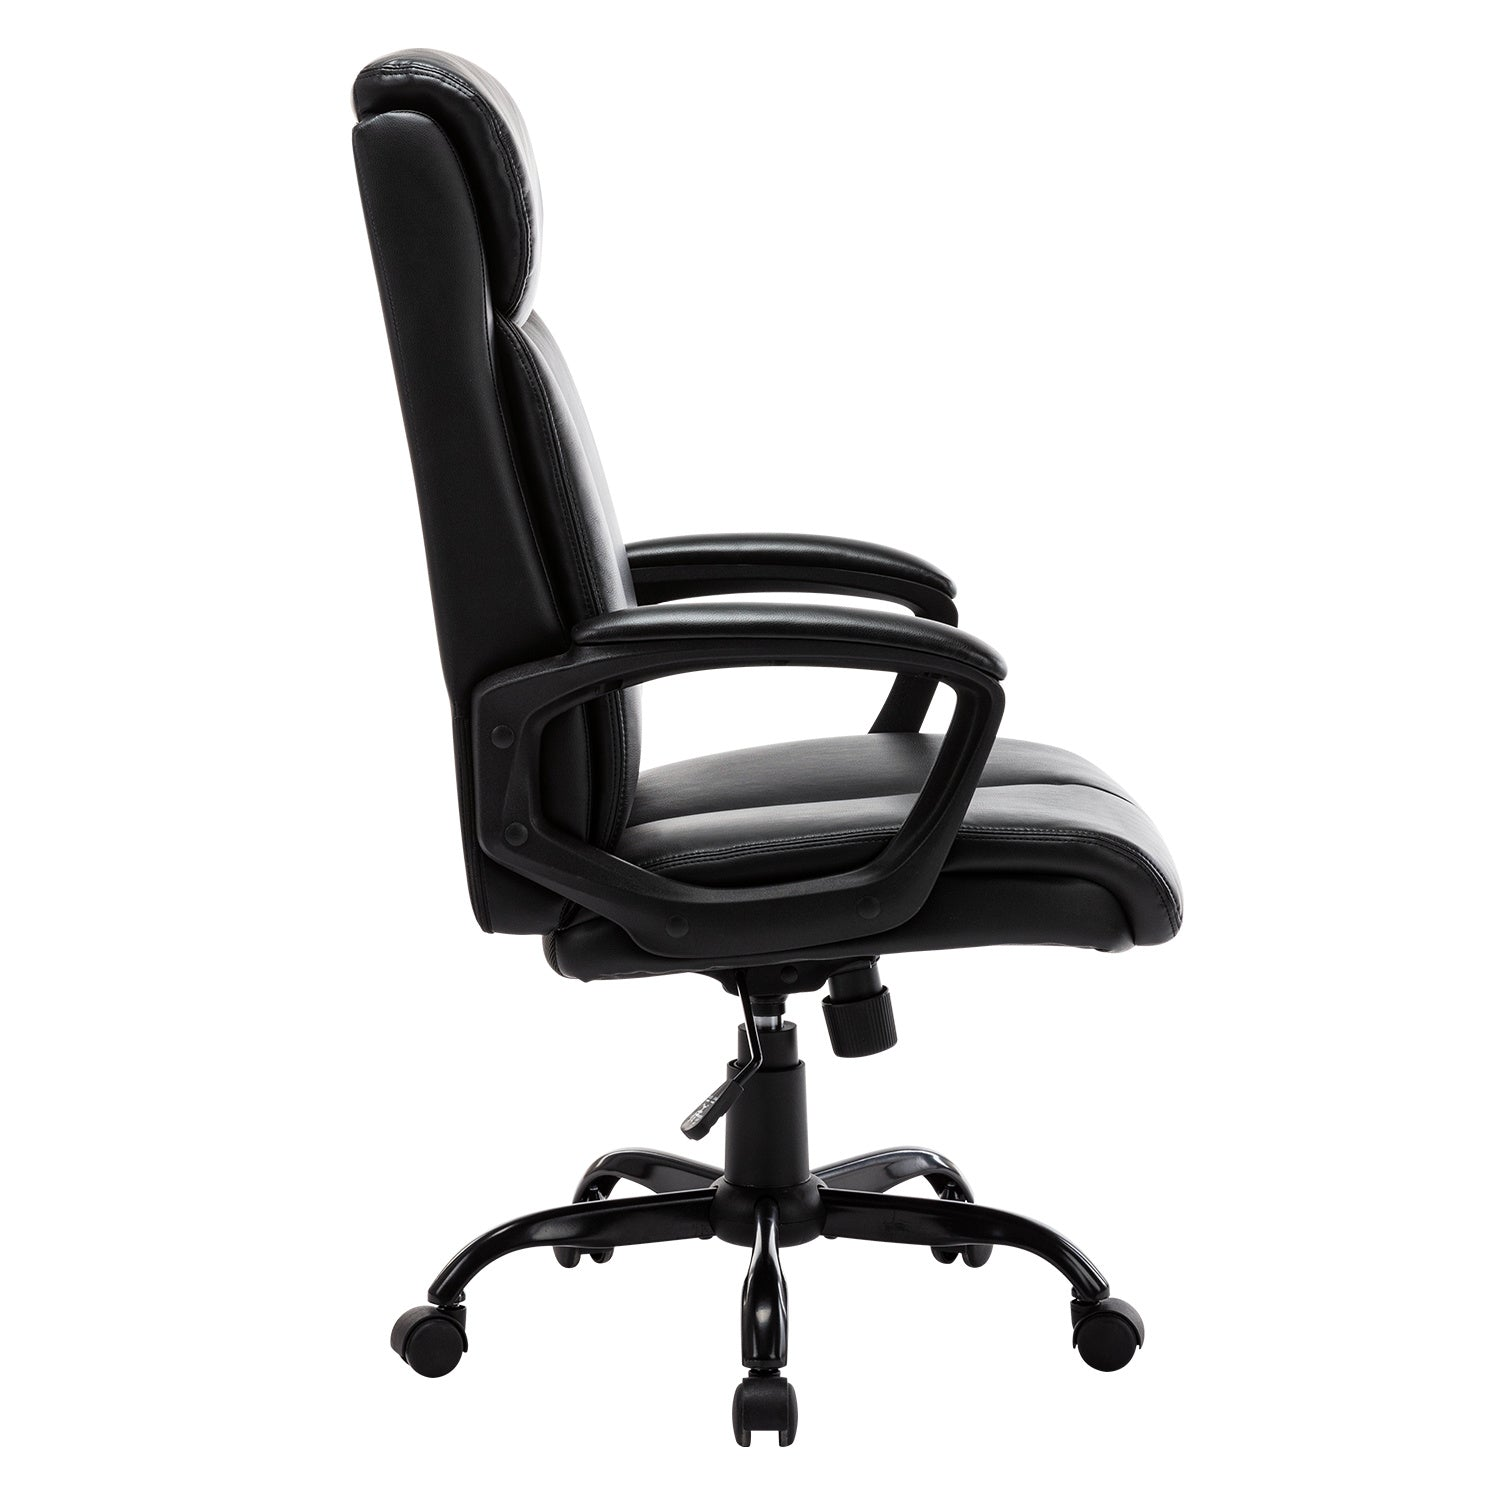 Wess Executive Office Chair - Qwork Office Furniture